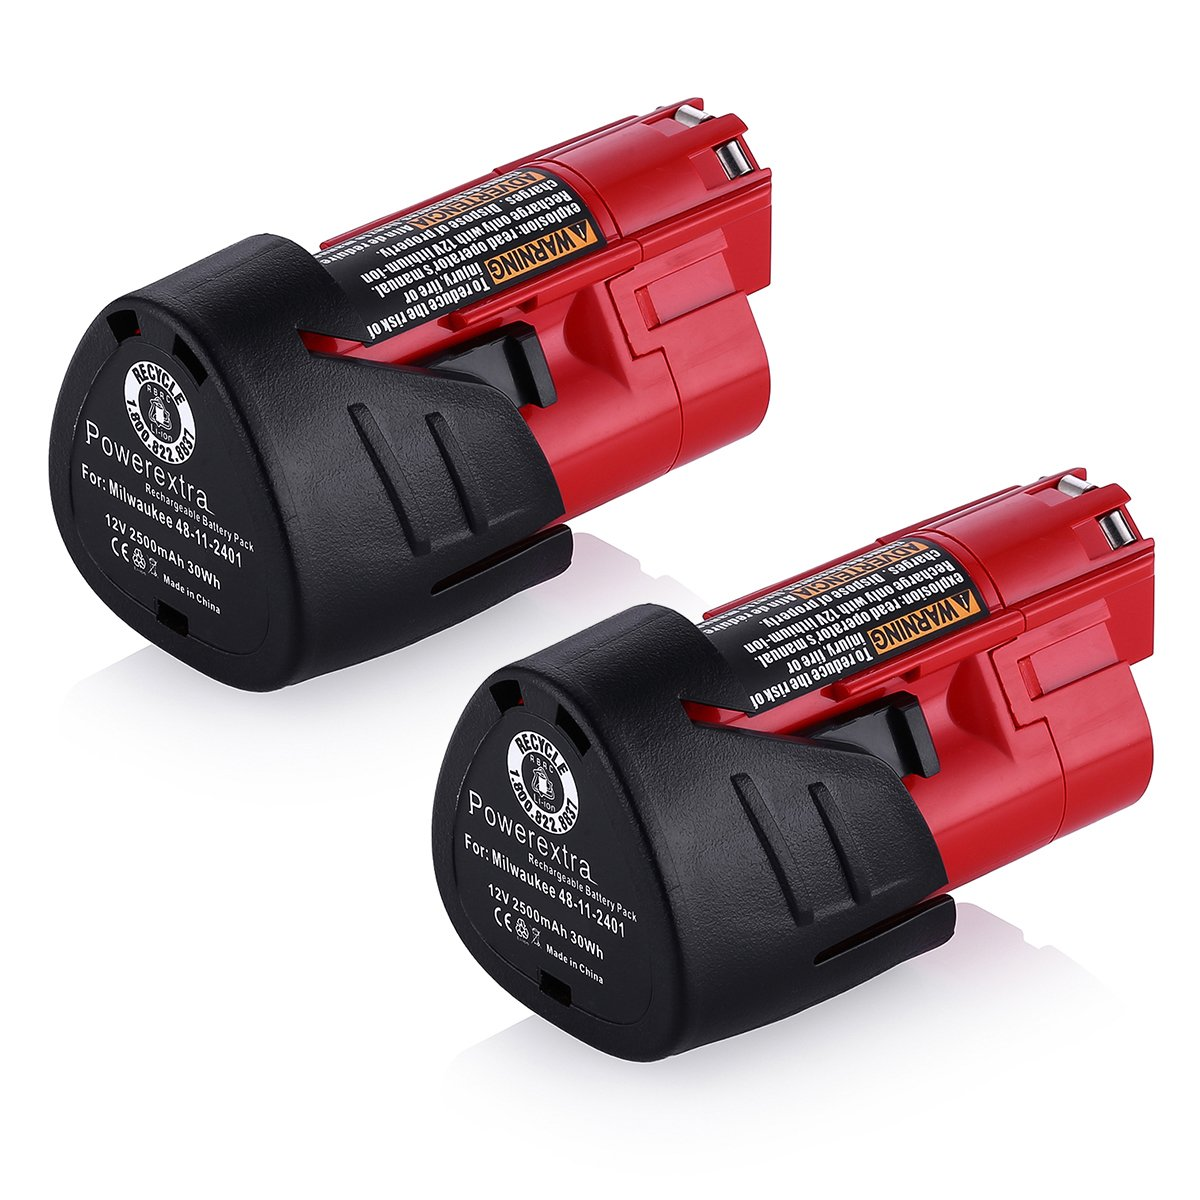 Powerextra 2 Pack 12V 2500mAh Lithium-ion Replacement Battery Compatible with Milwaukee M12 Milwaukee 48-11-2411 REDLITHIUM 12-Volt Cordless Milwaukee Tools Milwaukee 12V Battery Lithium-ion